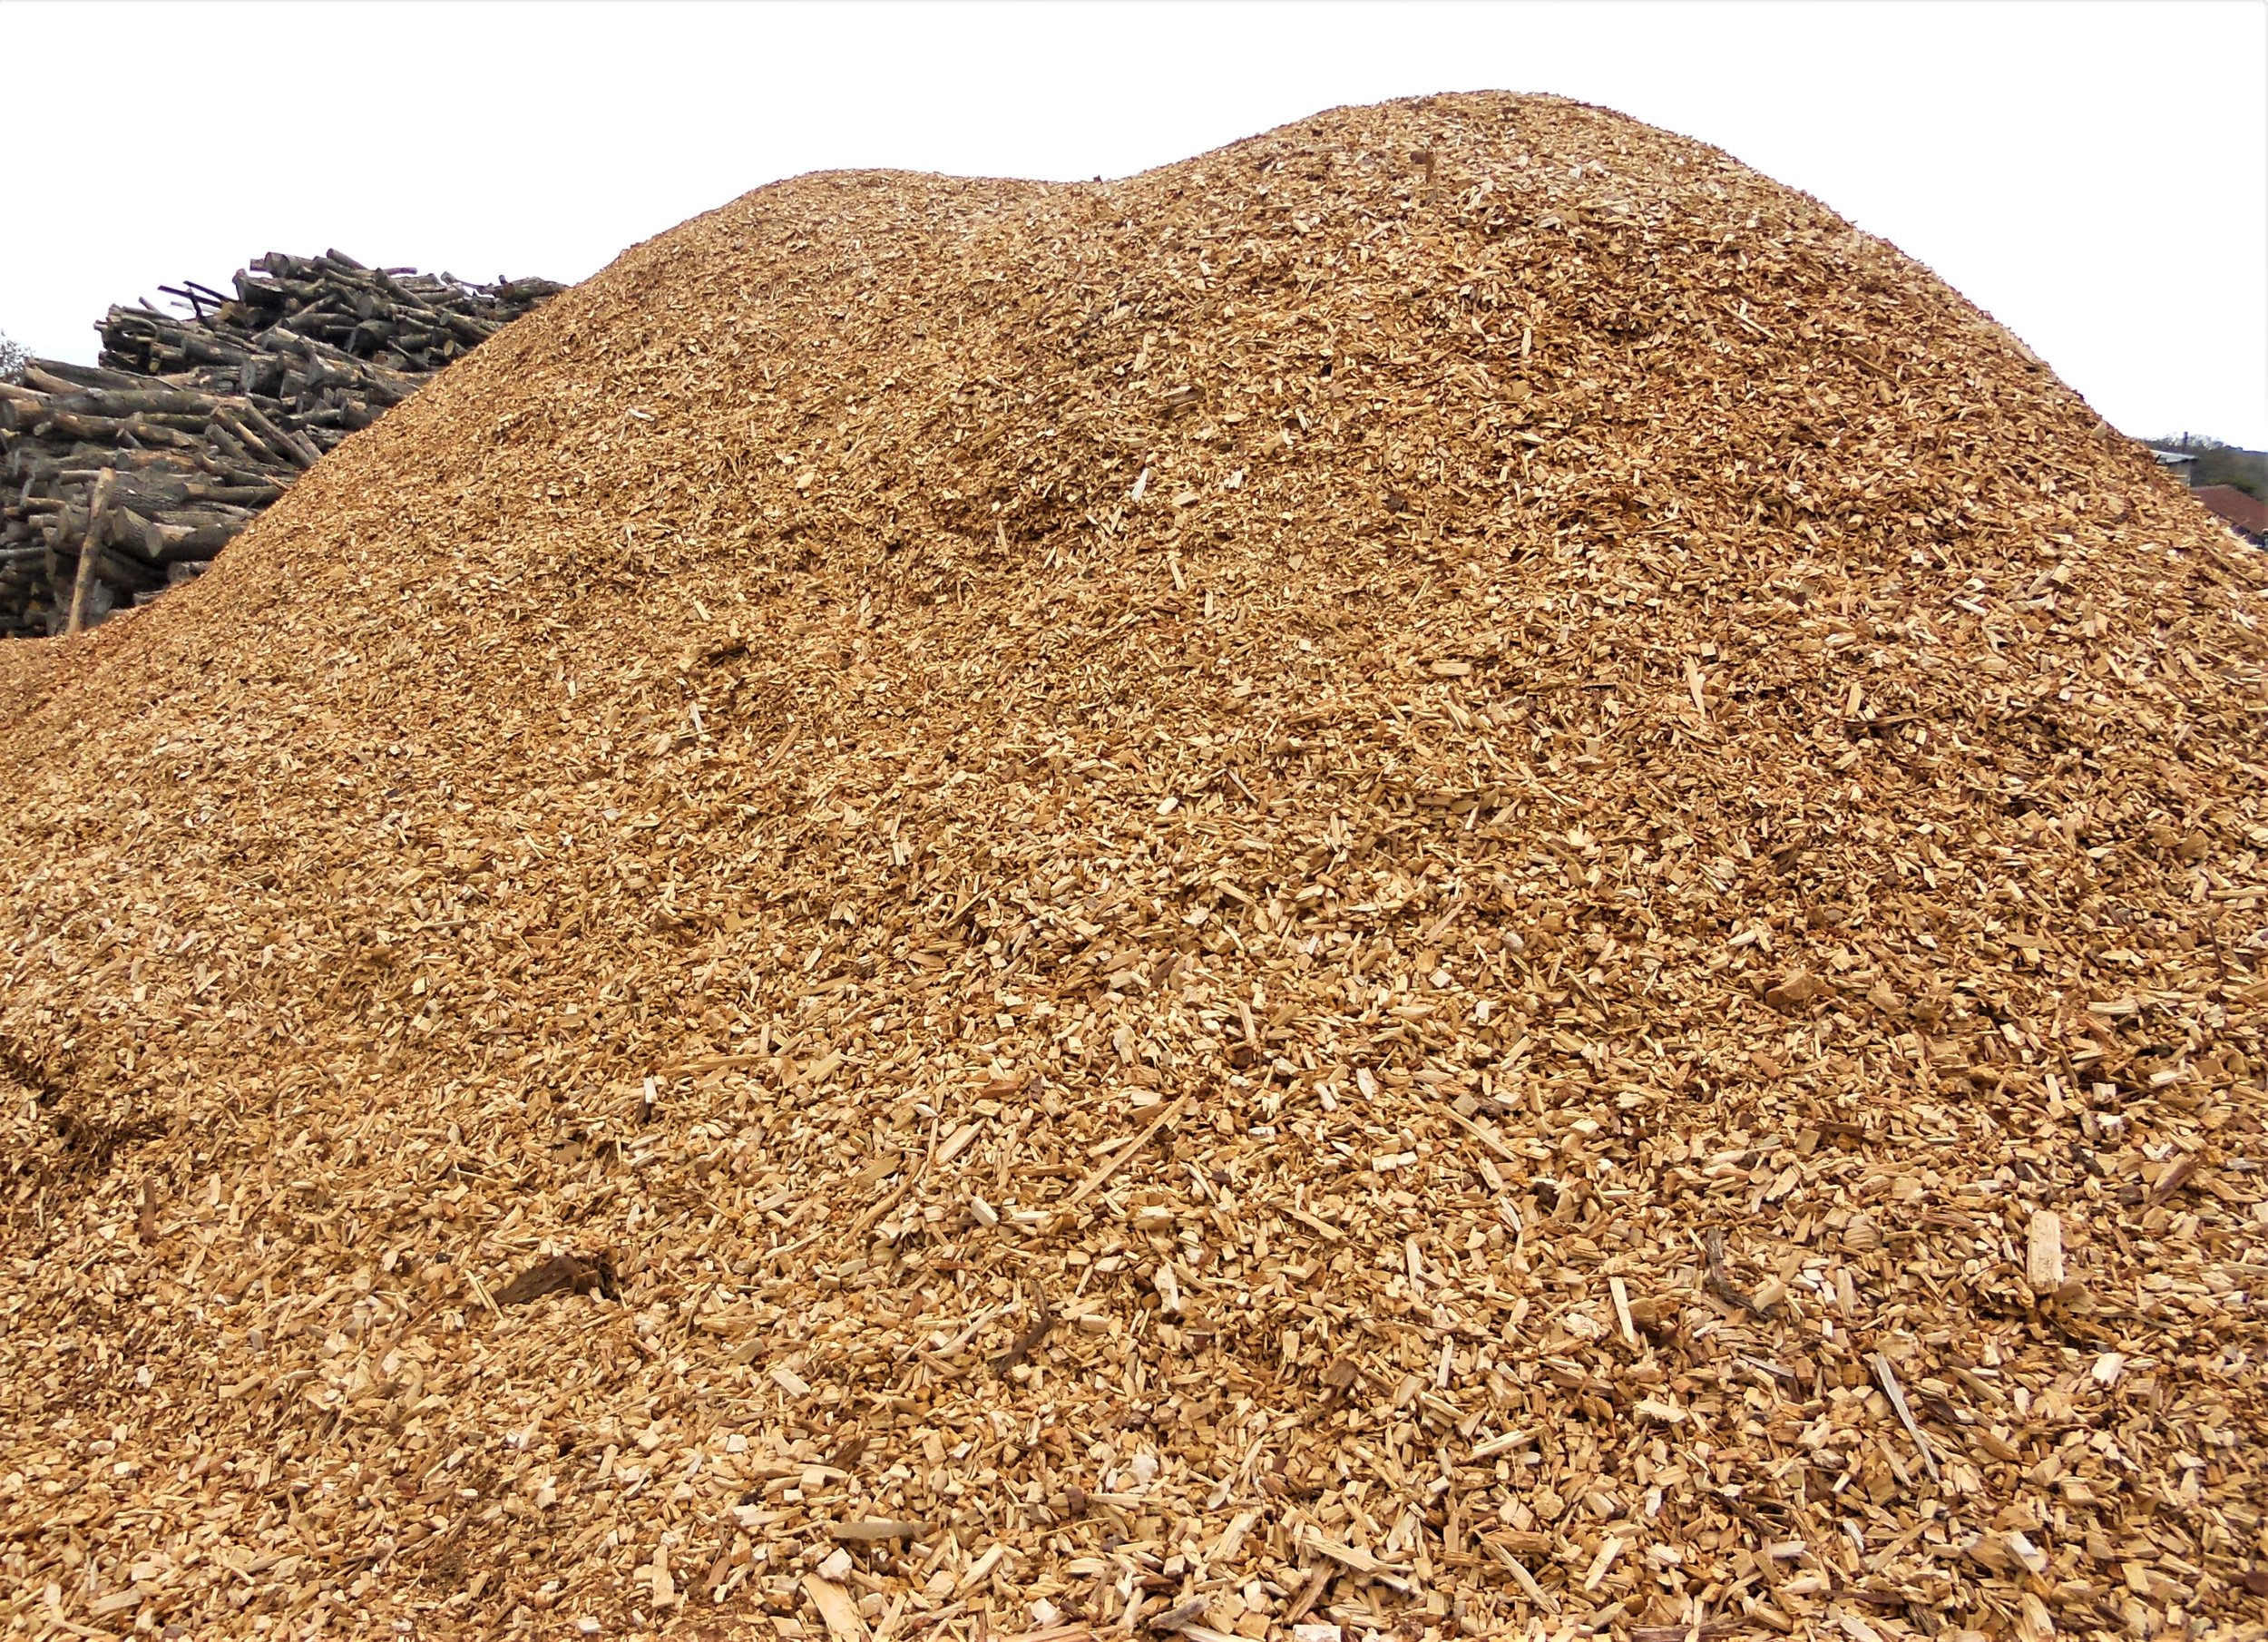 Woodchip - Woodchip is a by product from our milling operations and can be sold loose or in bags.£20 + vat per m3 collected loose£40 inc vat 1 x forestry bag delivered£70 inc vat 2 x forestry bag delivered£100 inc vat Transit tipper load deliveredLarger quantities are available for delivery please call to enquire